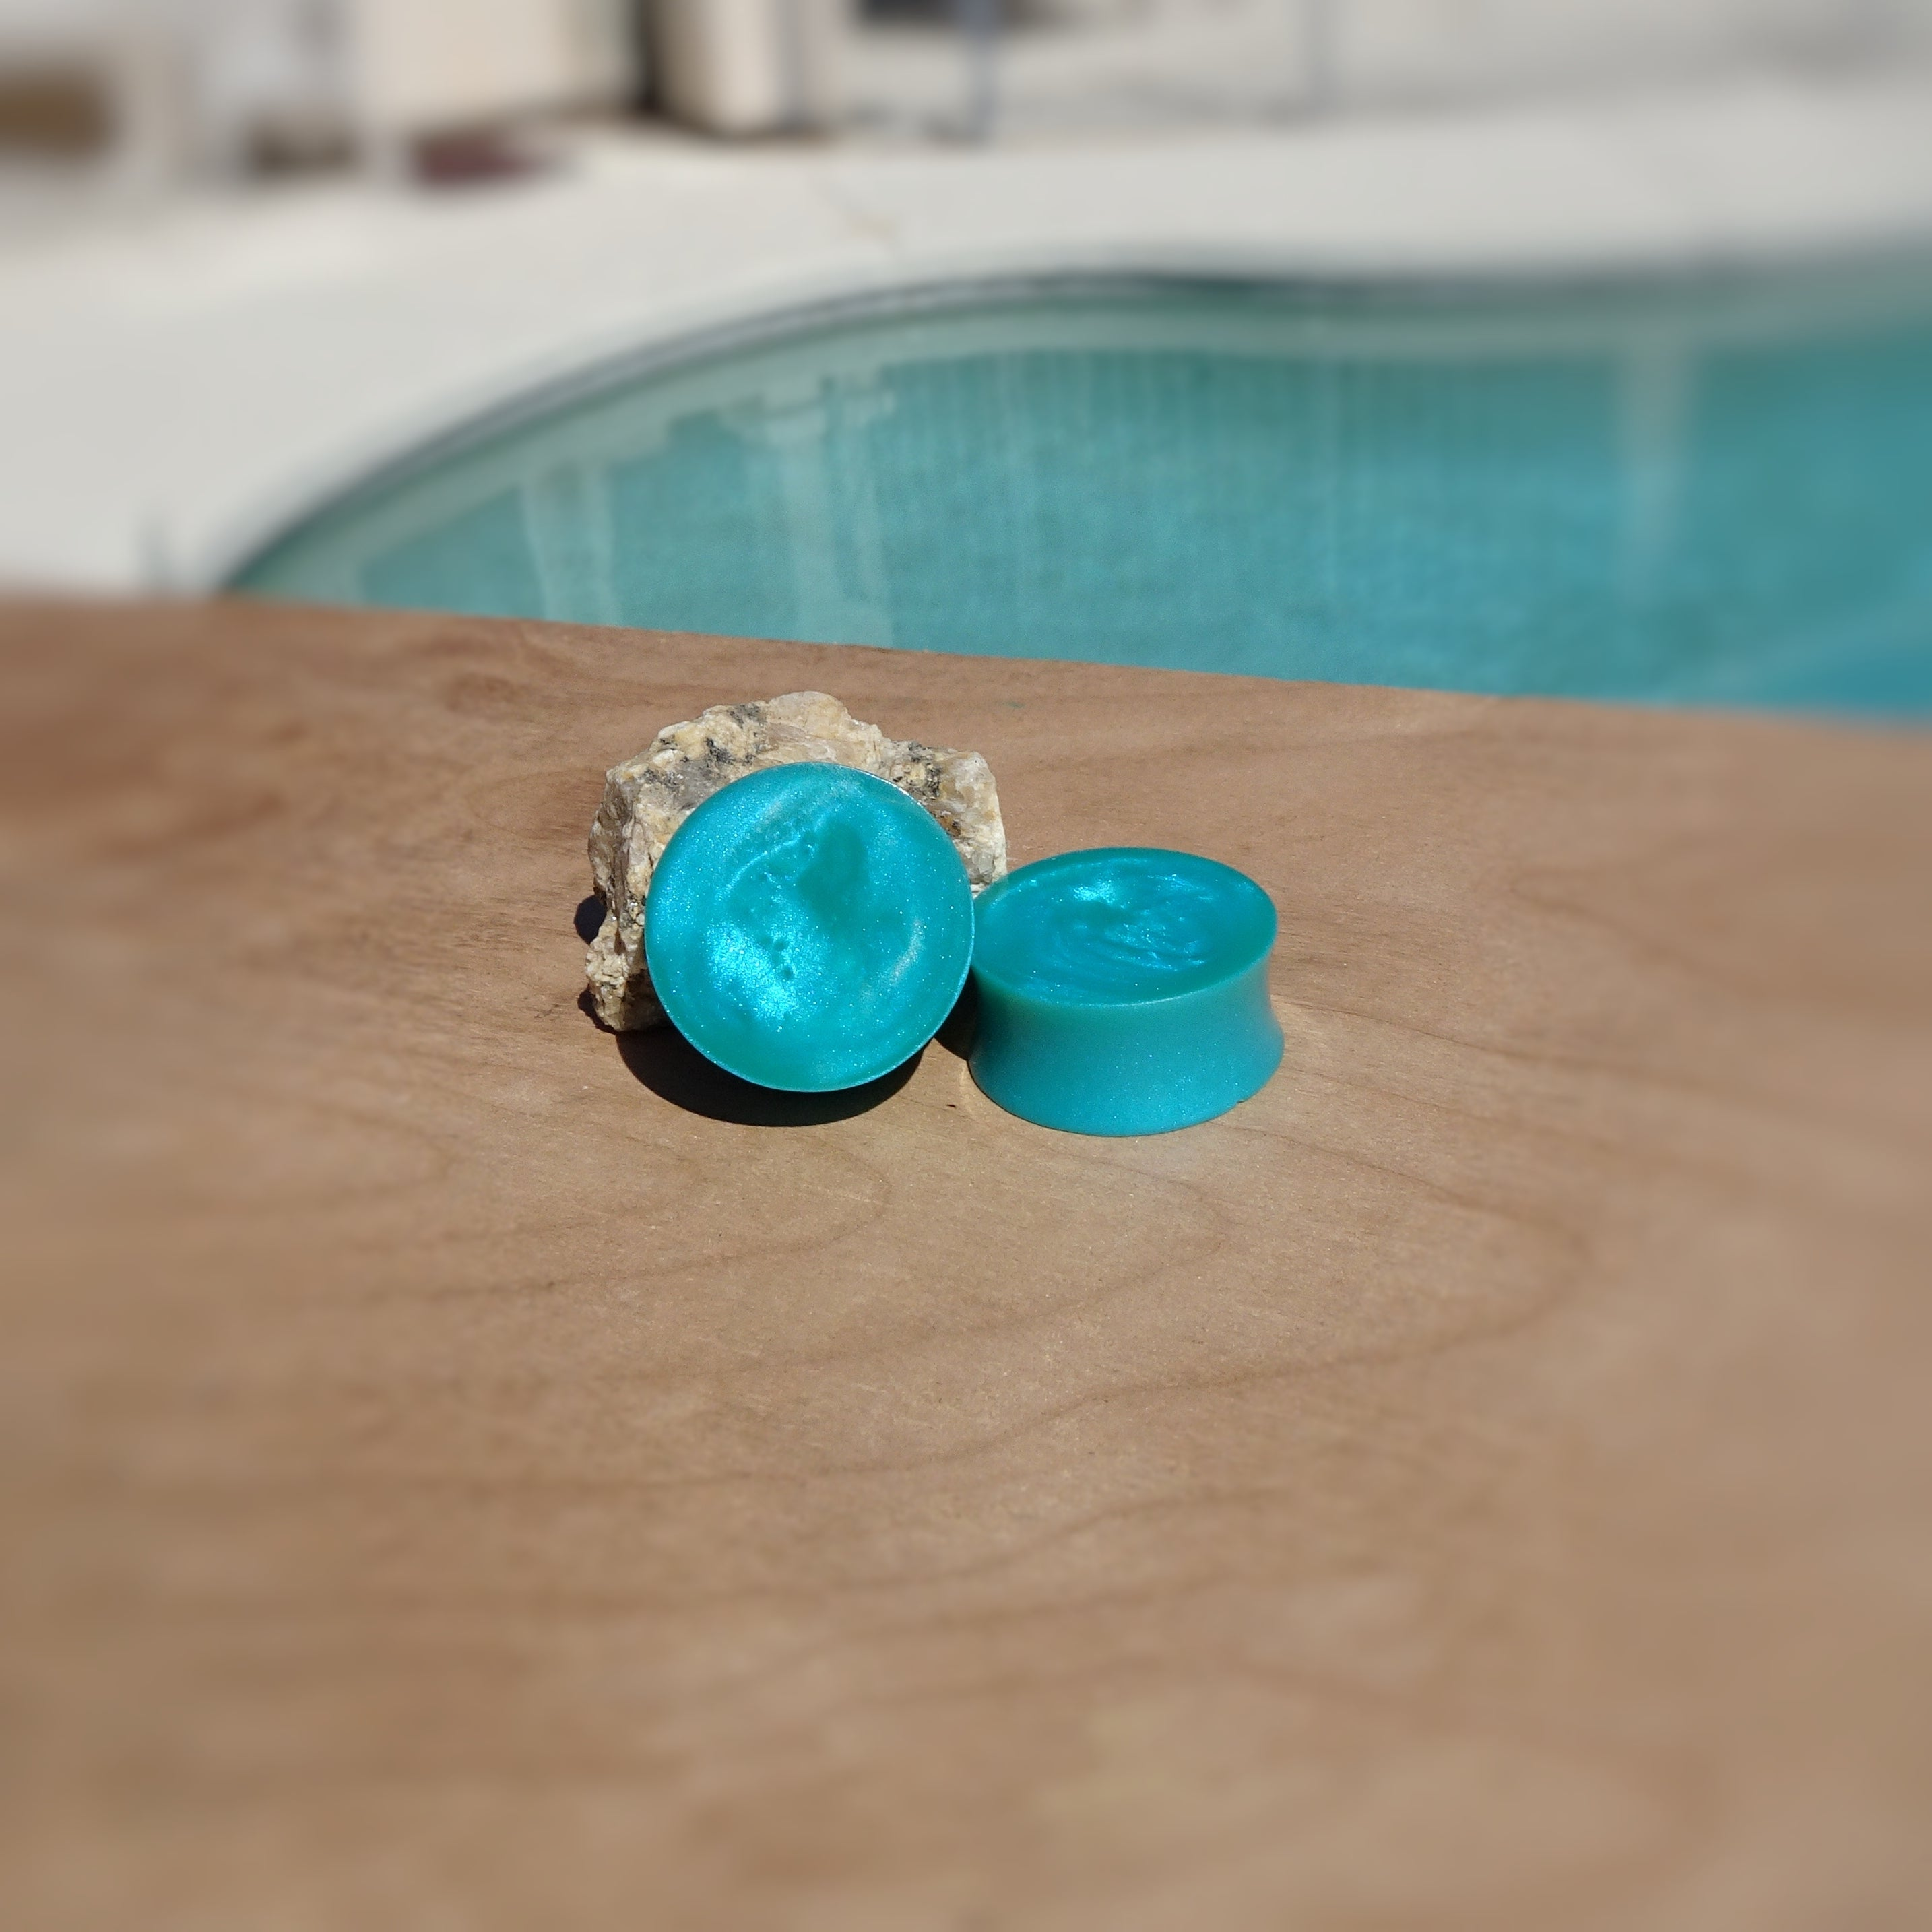 Sea Blue Pearl Resin Double Flared Ear Plugs or Tunnels or Teardrops - Ear Gauges - Turquoise Blue - Art and Soule